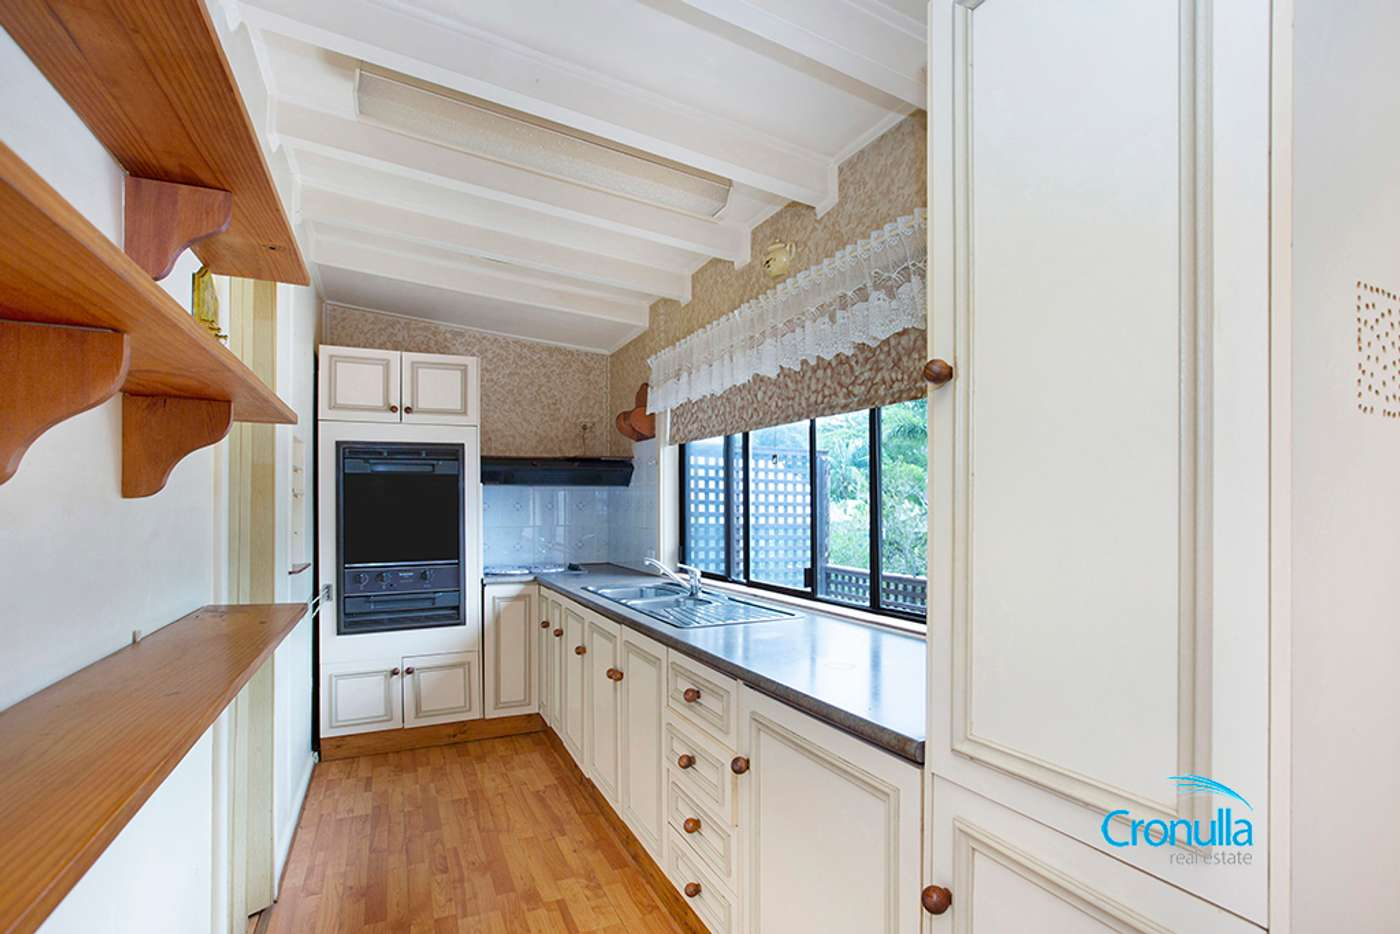 Sixth view of Homely house listing, 9 Silver Beach Road, Kurnell NSW 2231